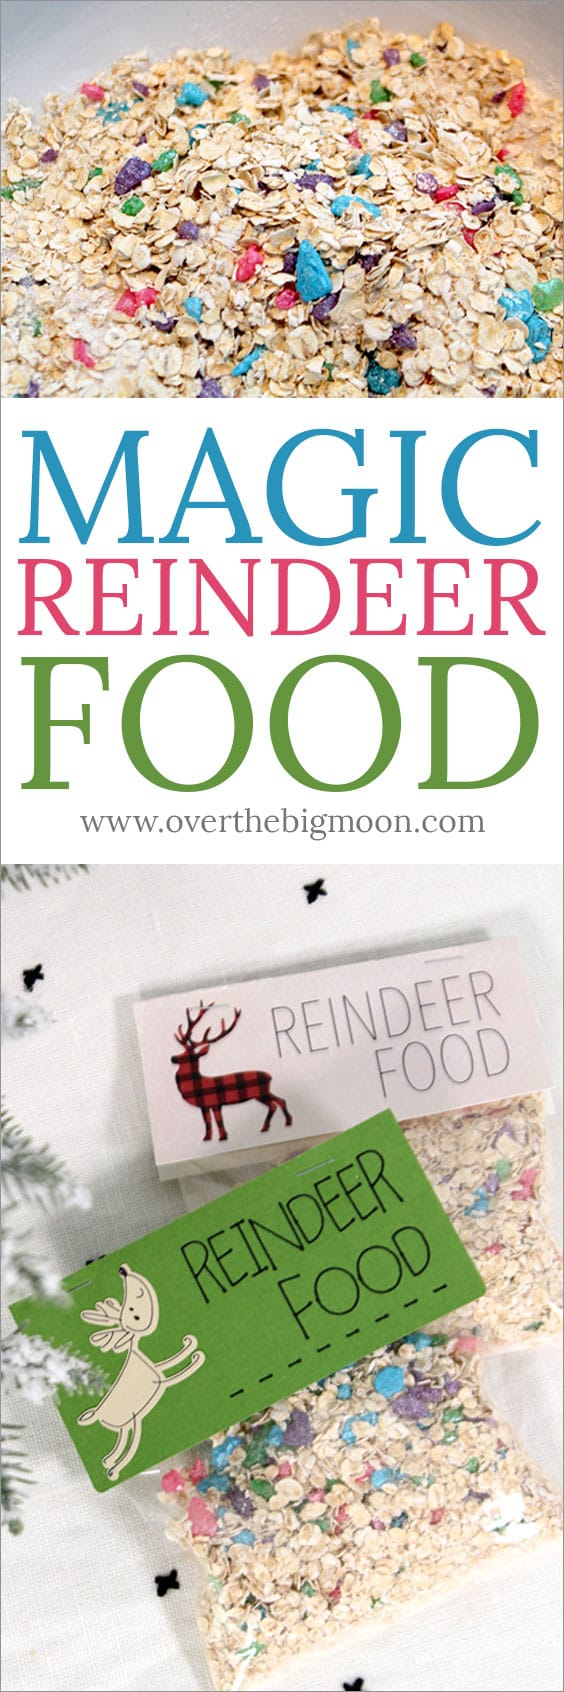 The most Magical Reindeer Food there is! Put it out with Santa's cookies for his reindeer or sprinkle it in the front yard! Come get the recipe and bag toppers! From overthebigmoon.com!